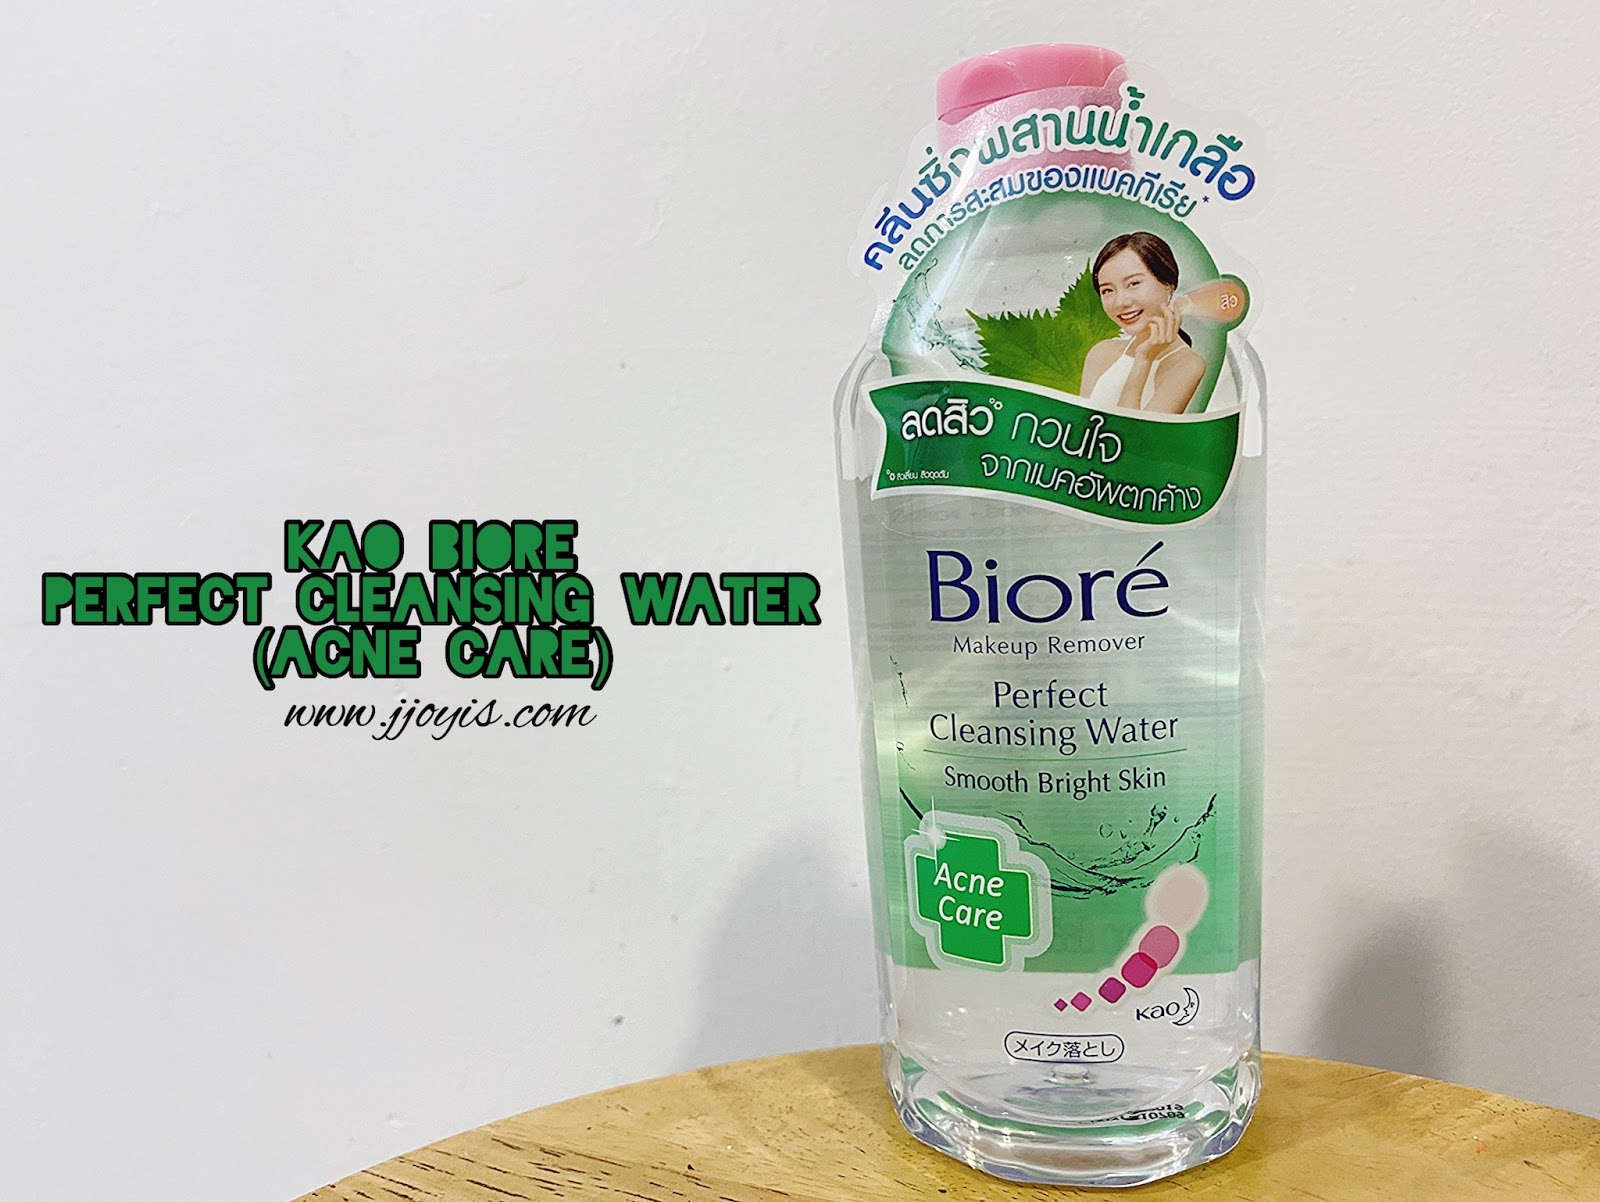 Biore, cleansing water, anti acne, perfect micellar cleansing water, biore perfect miscellar cleansing water, makeup remover, cleanser